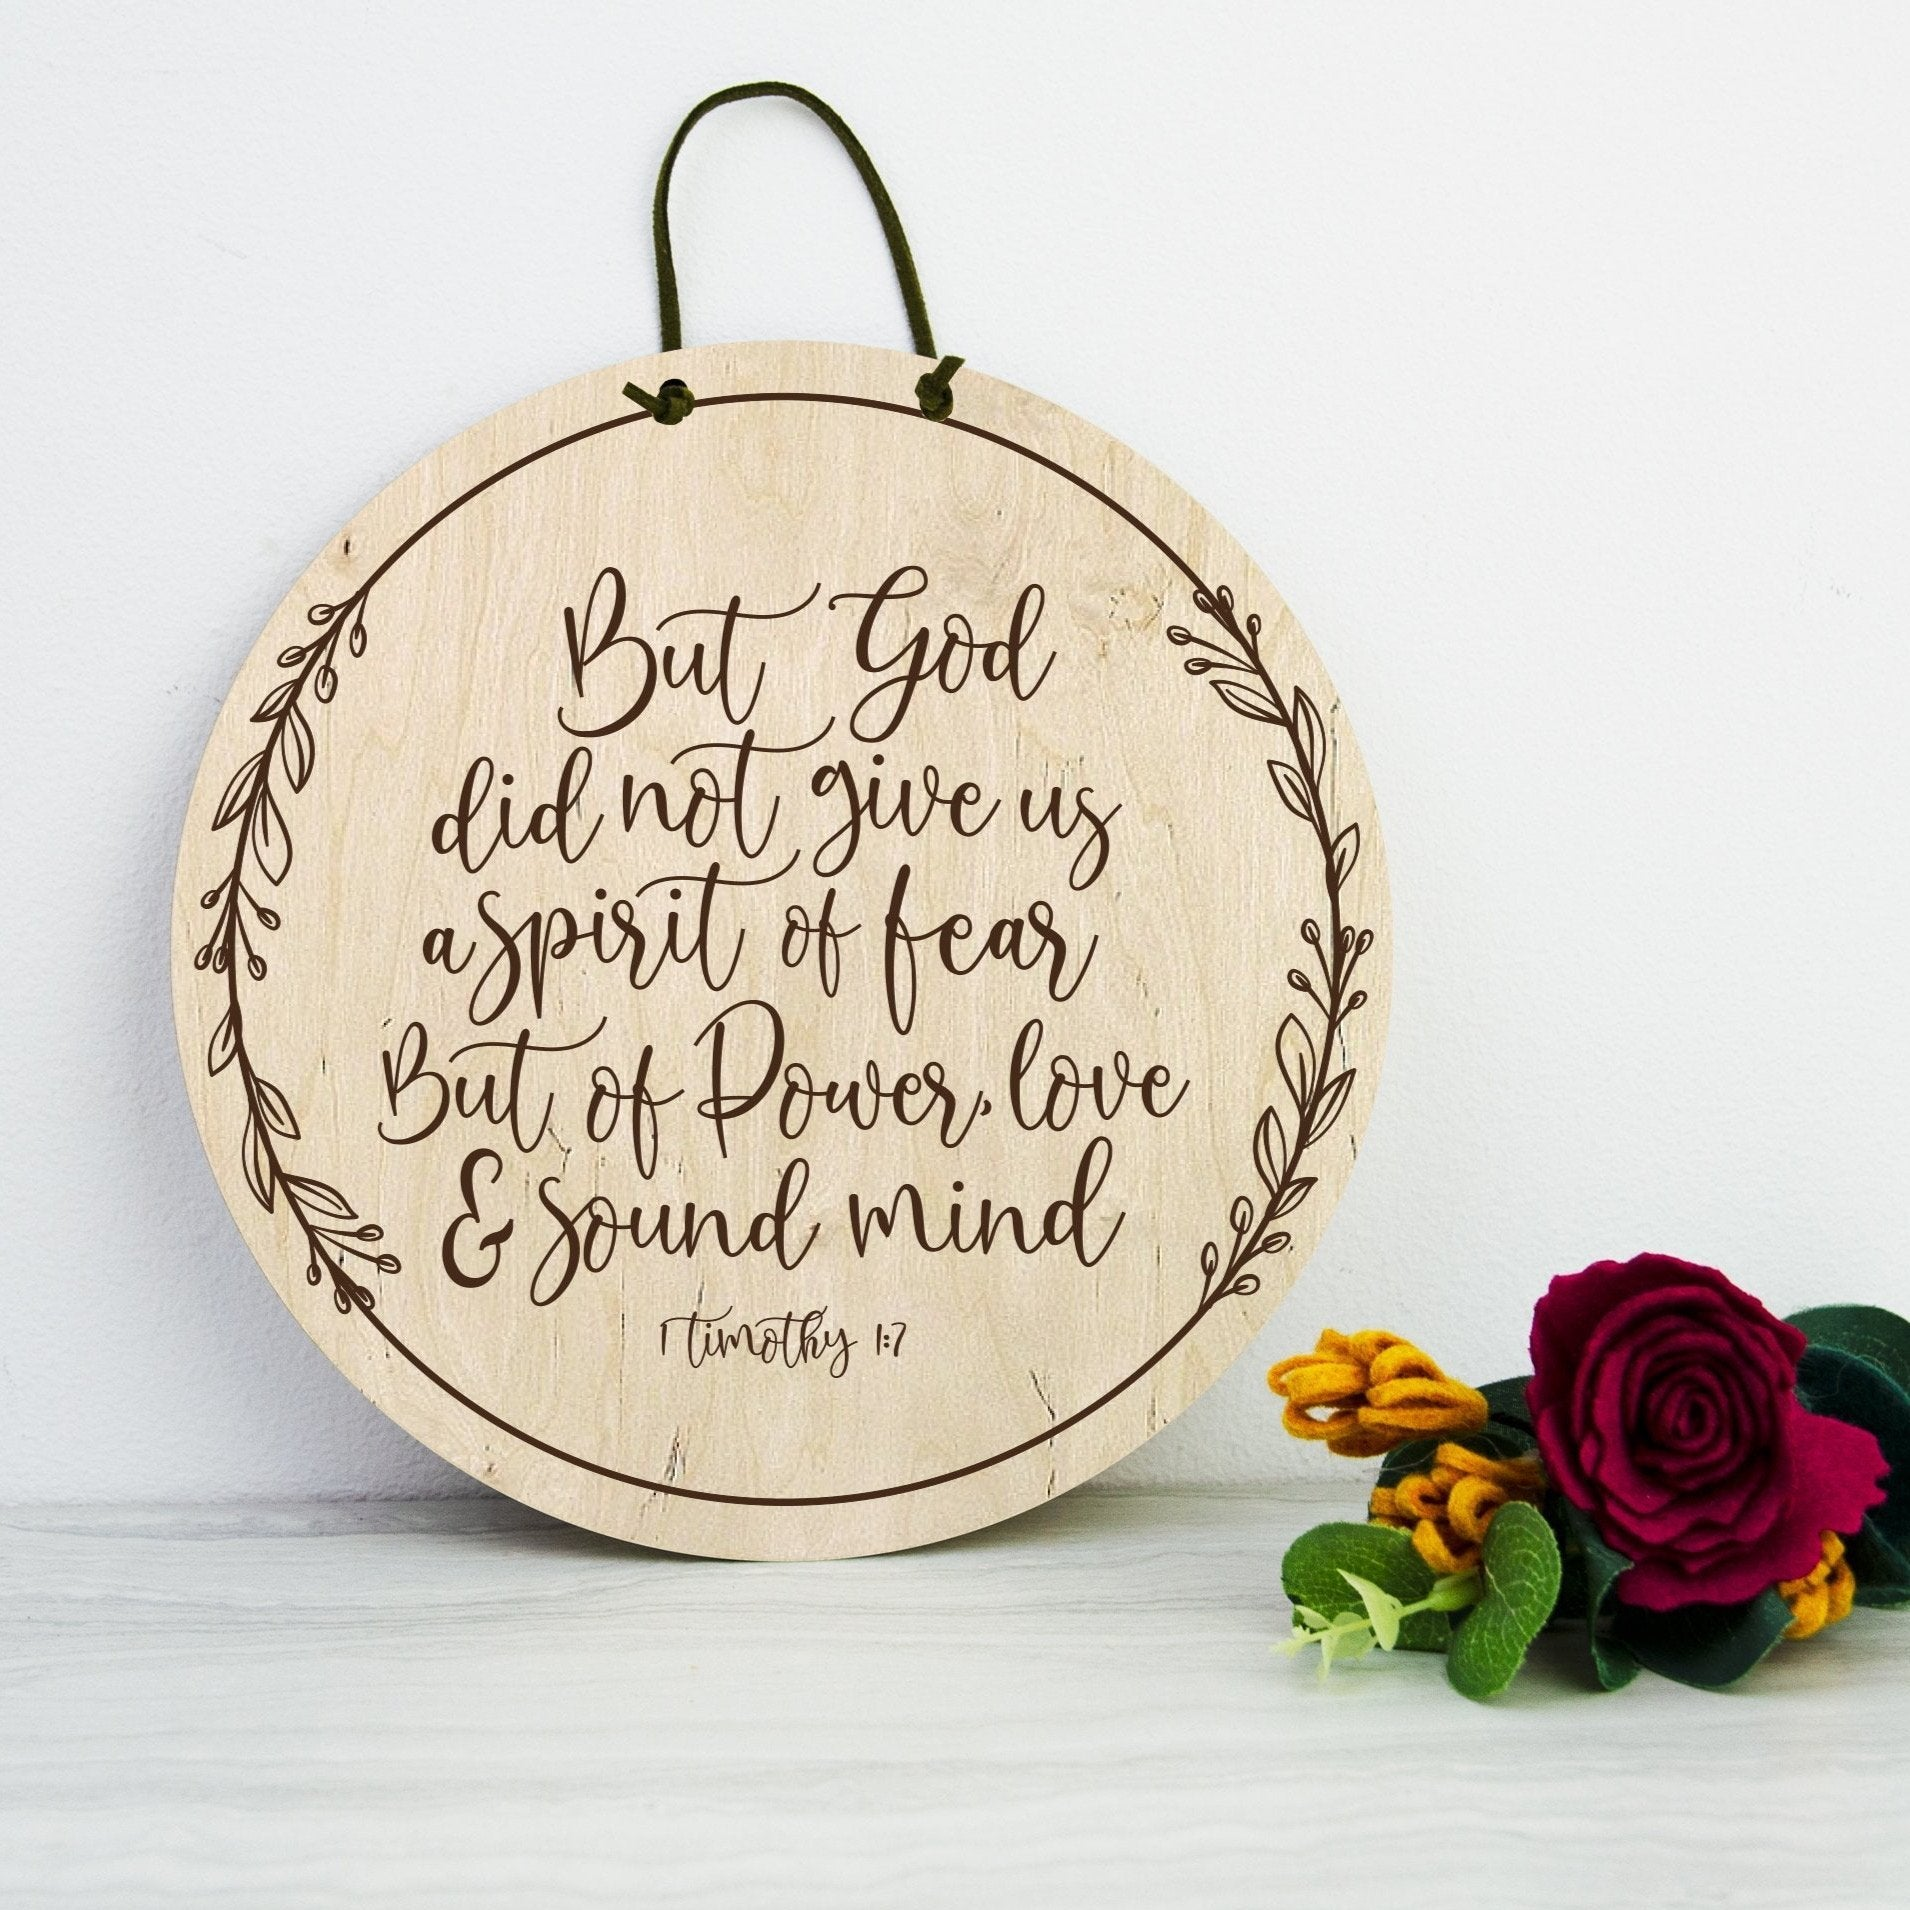 God did not give us a power of Fear engraved wooden wall sign